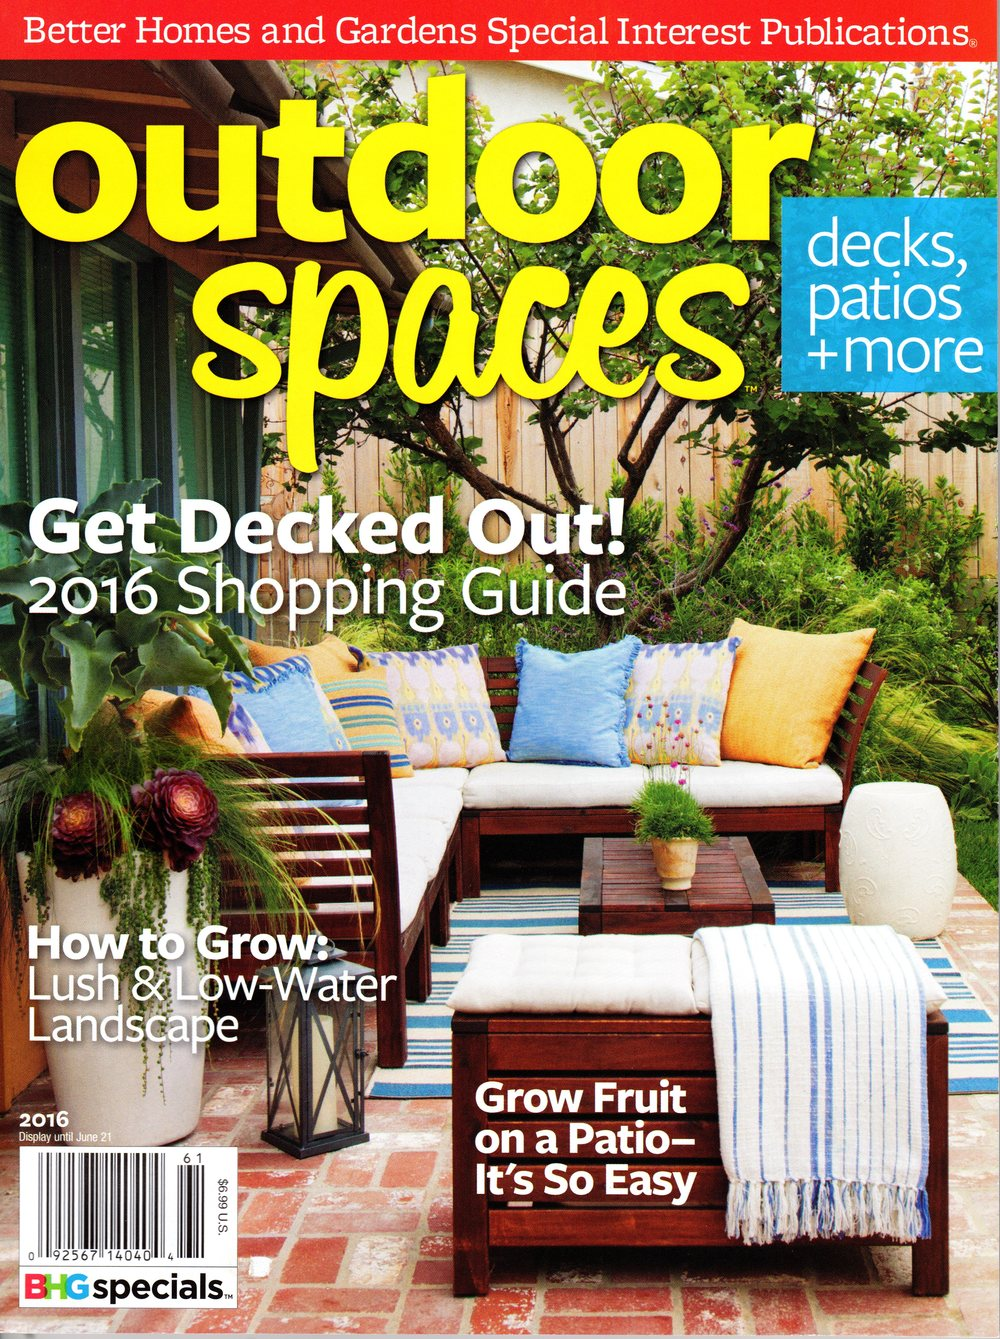 Our Beach Contemporary Design featured in Better Home and Garden's Outdoor Spaces magazine.